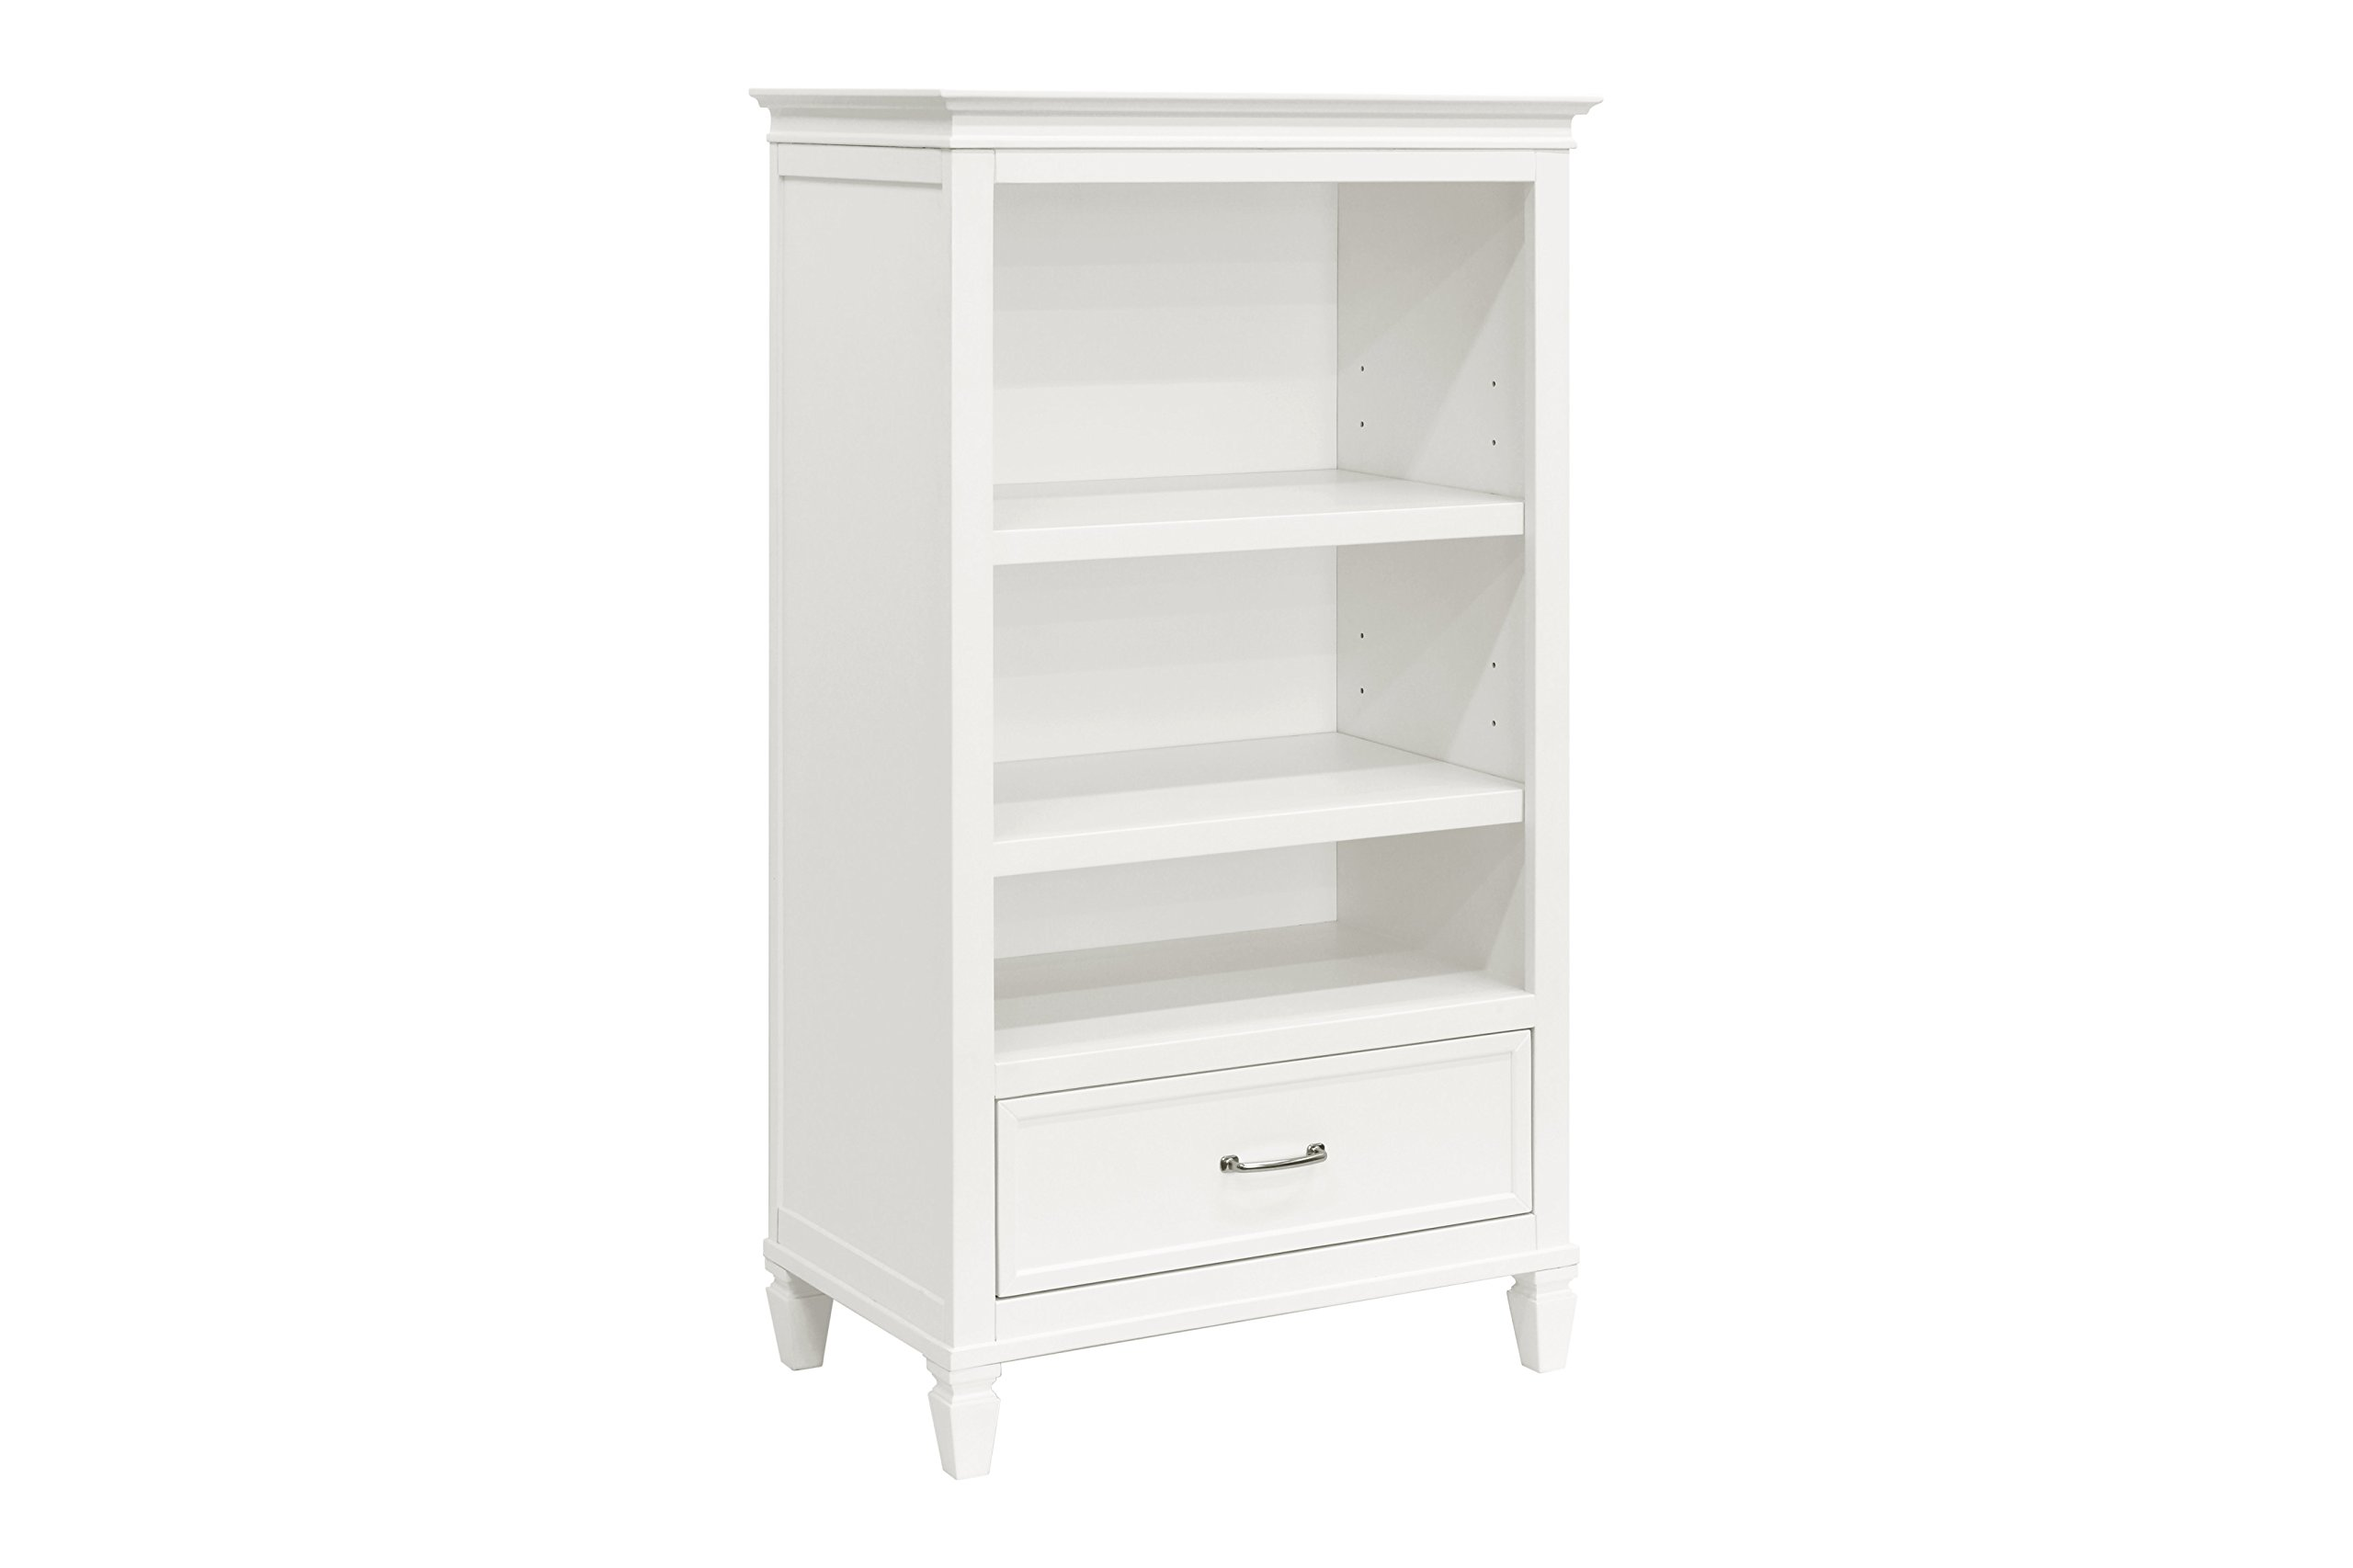 Million Dollar Baby Darlington Bookcase, Warm White